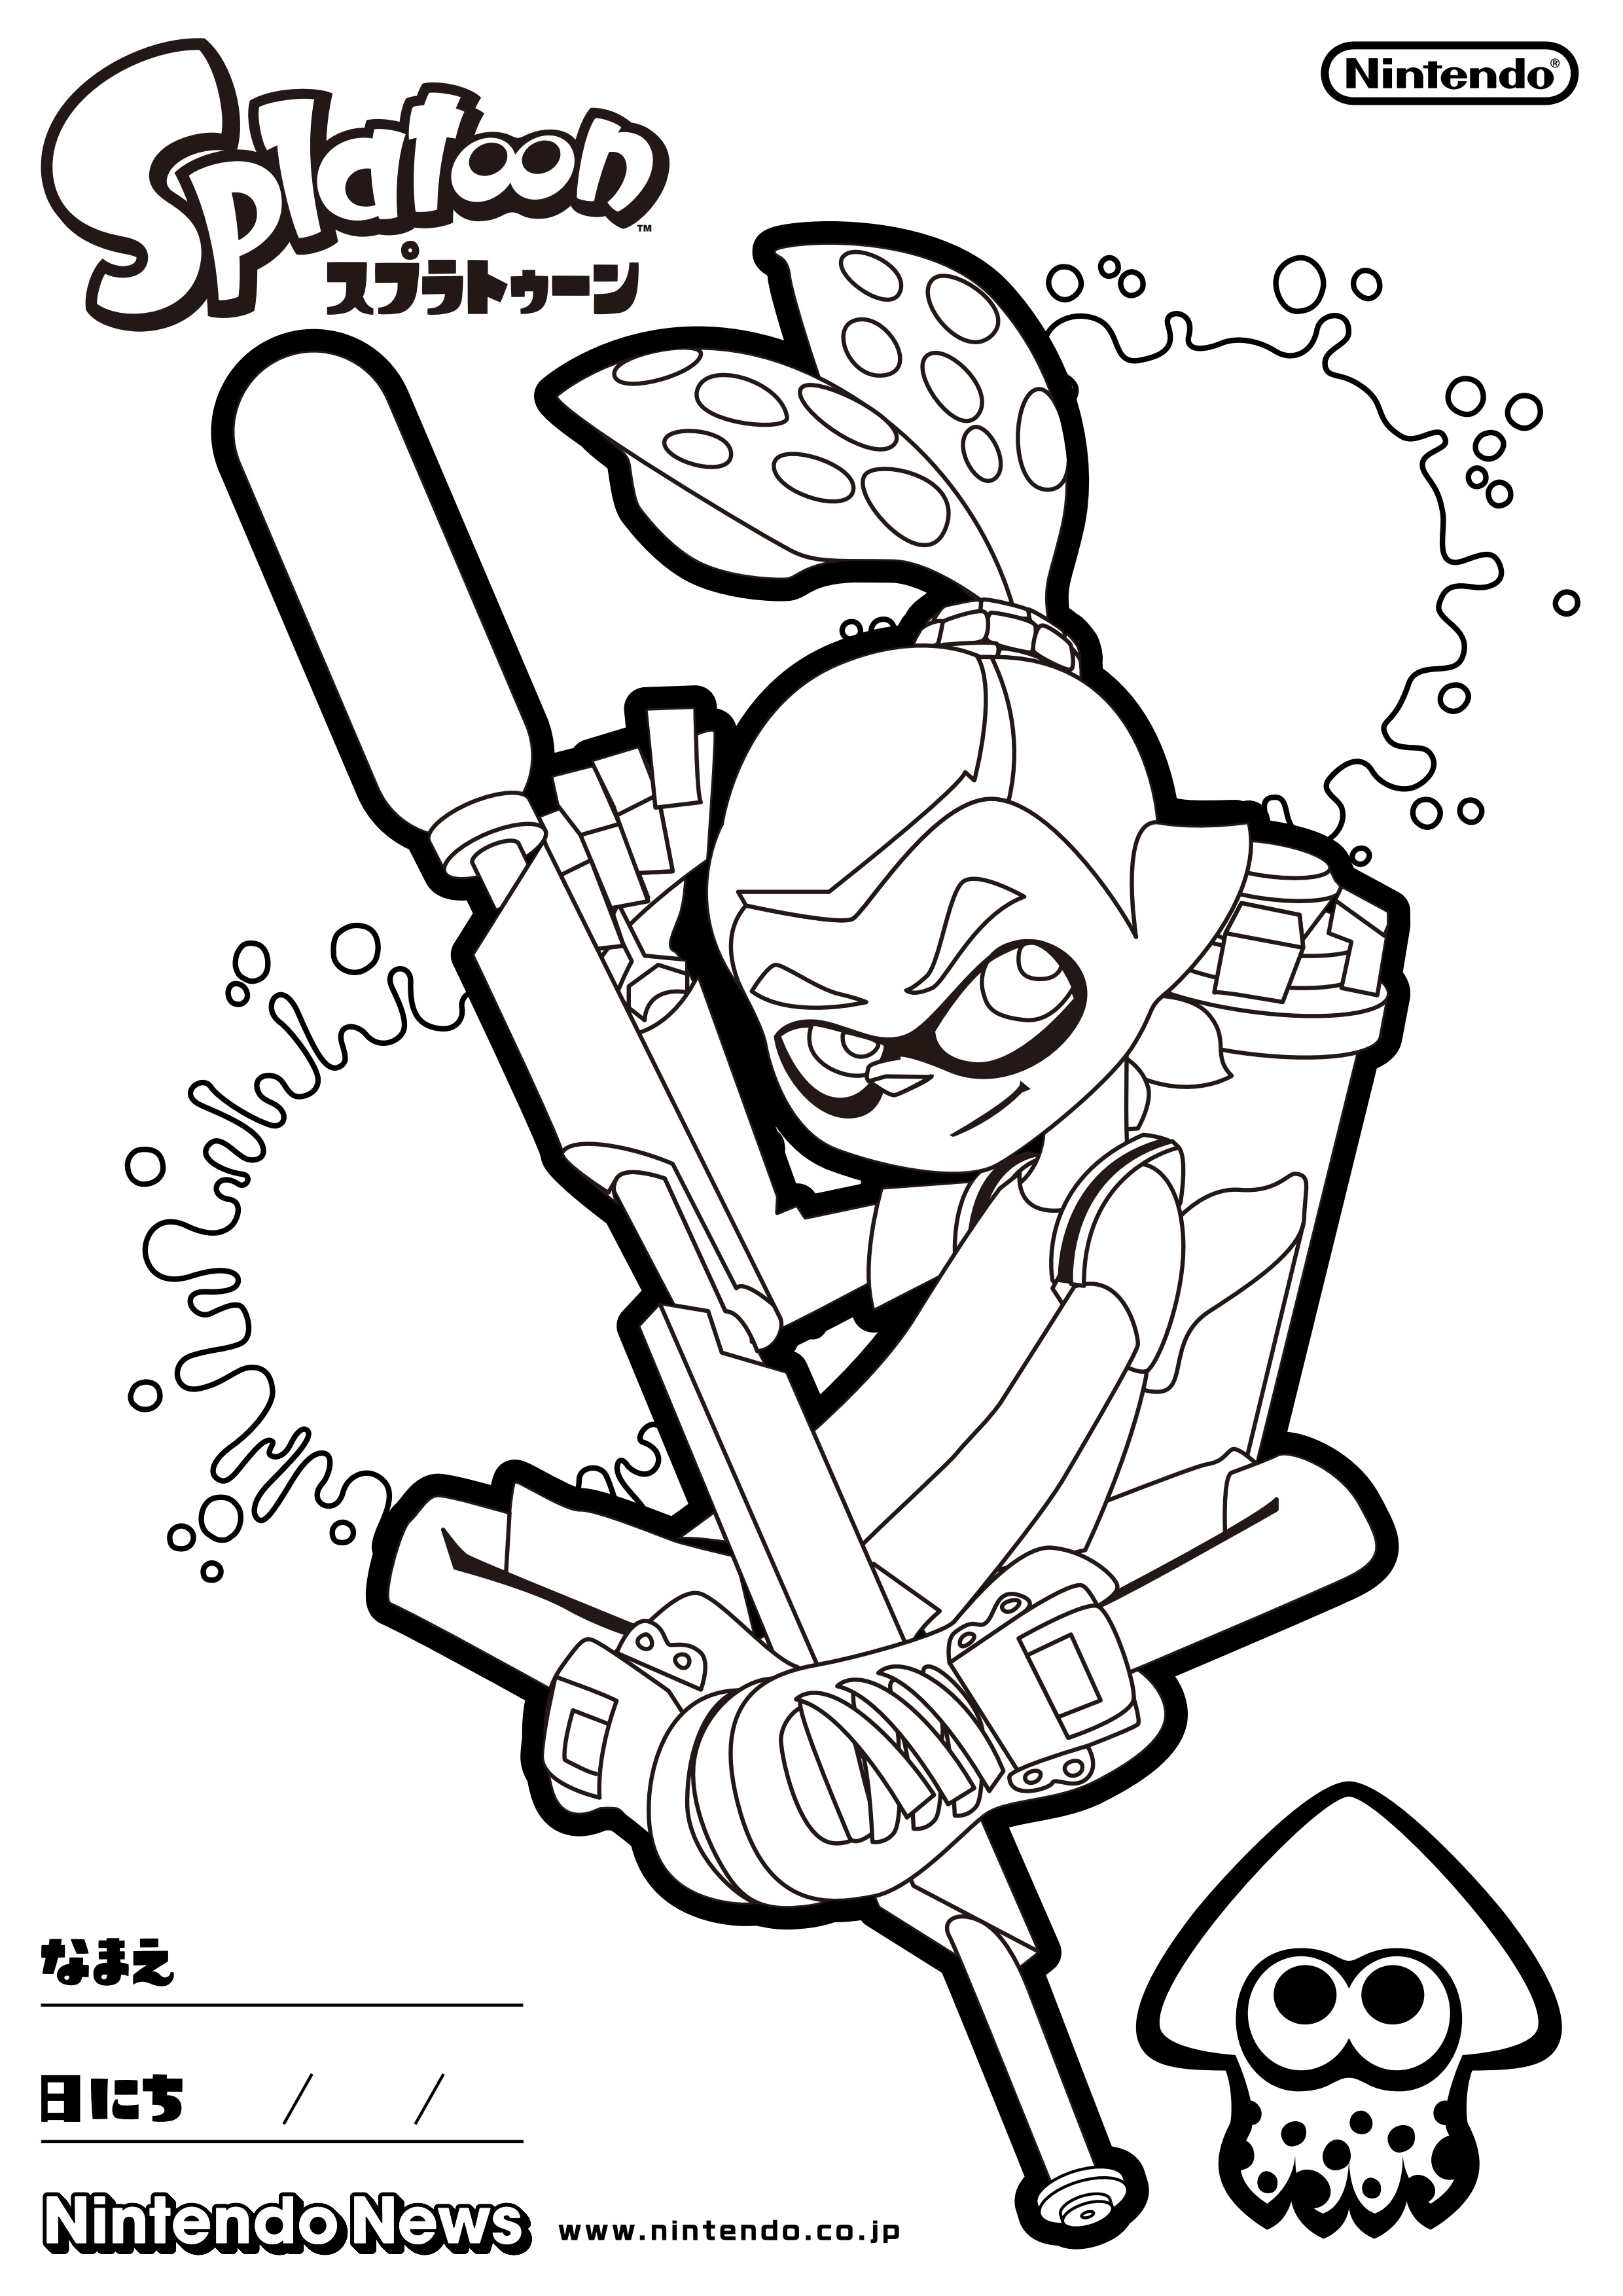 hd wallpapers splatoon coloring page edp earecom press